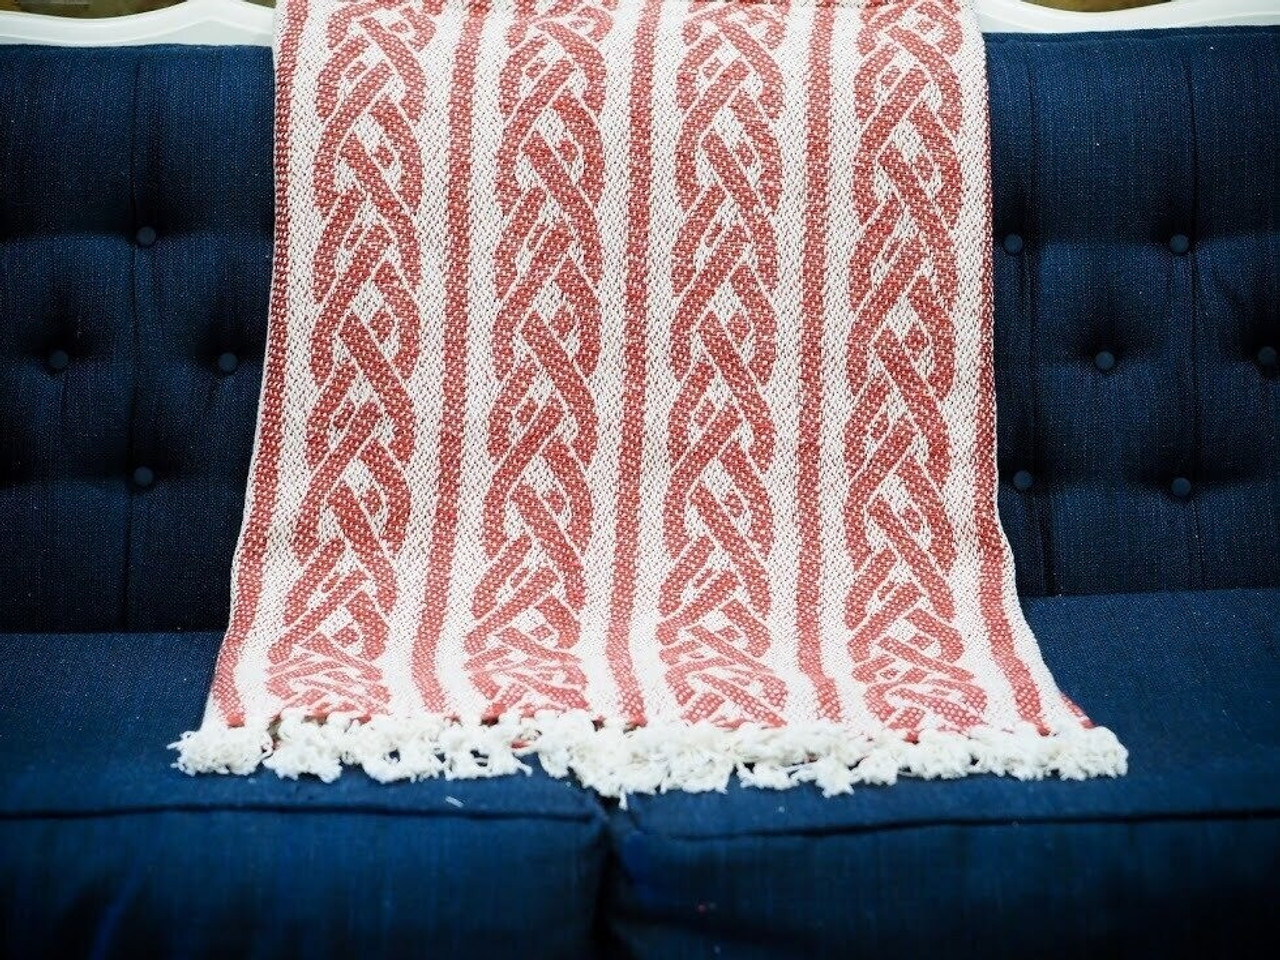 A Red and White Throw Blanket Hangs on a Navy Blue Couch